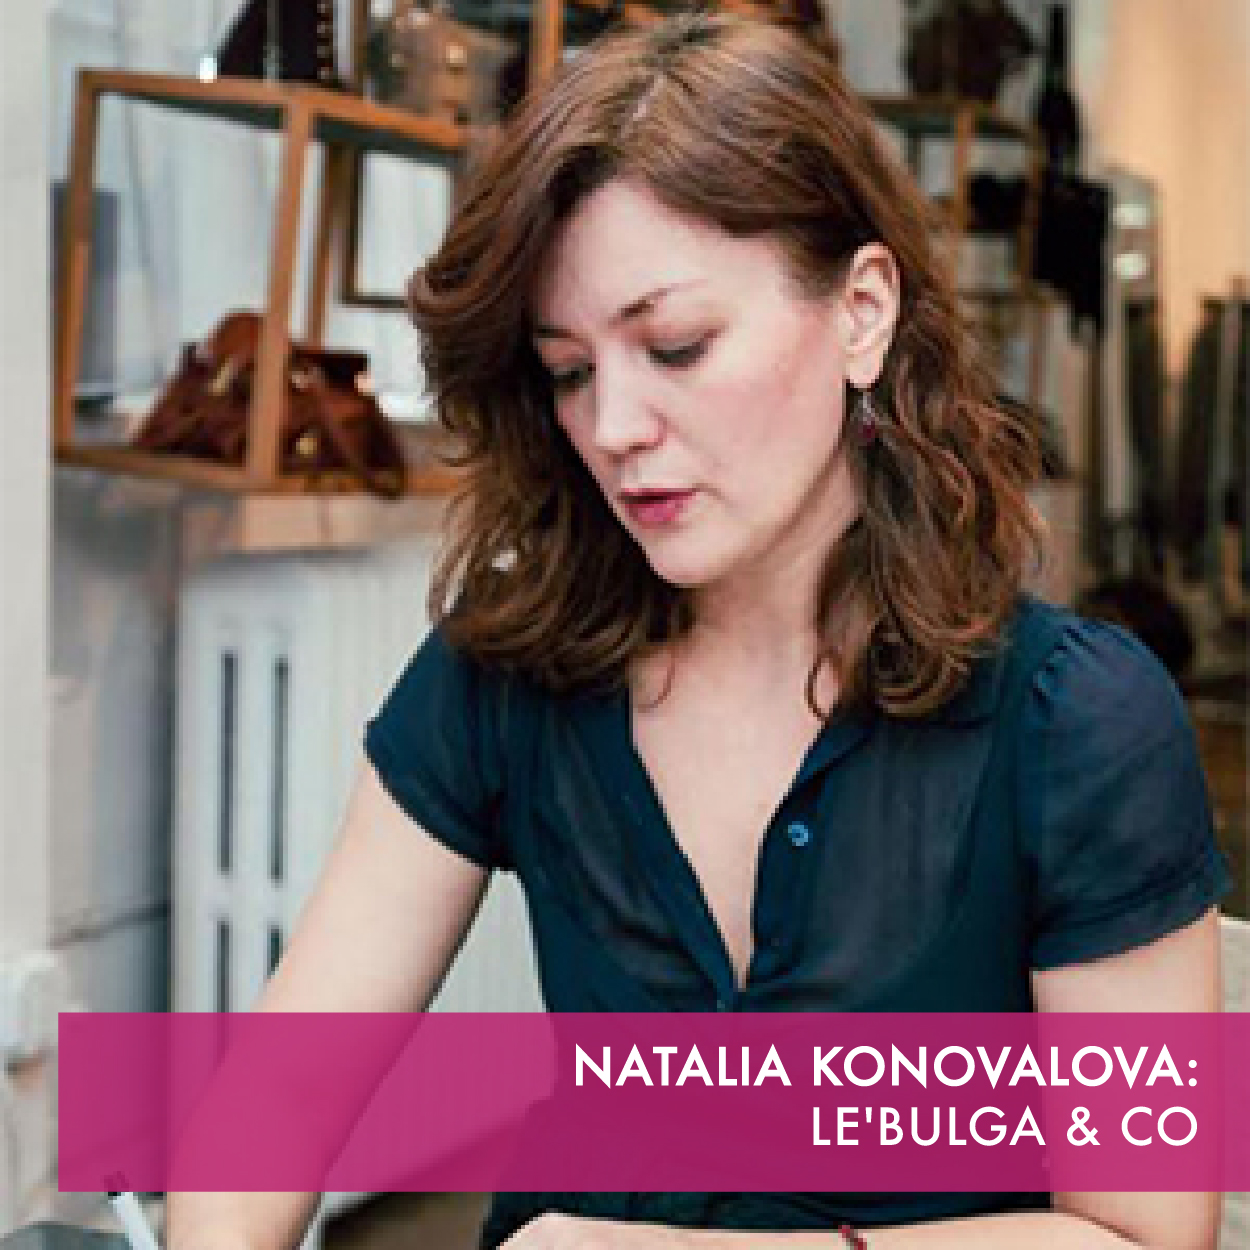 Le'Bulga is known for lamba leather bags and eye-catching designs inspired by New York City's fast paced lifestyle and geared toward the modern woman's life journey.